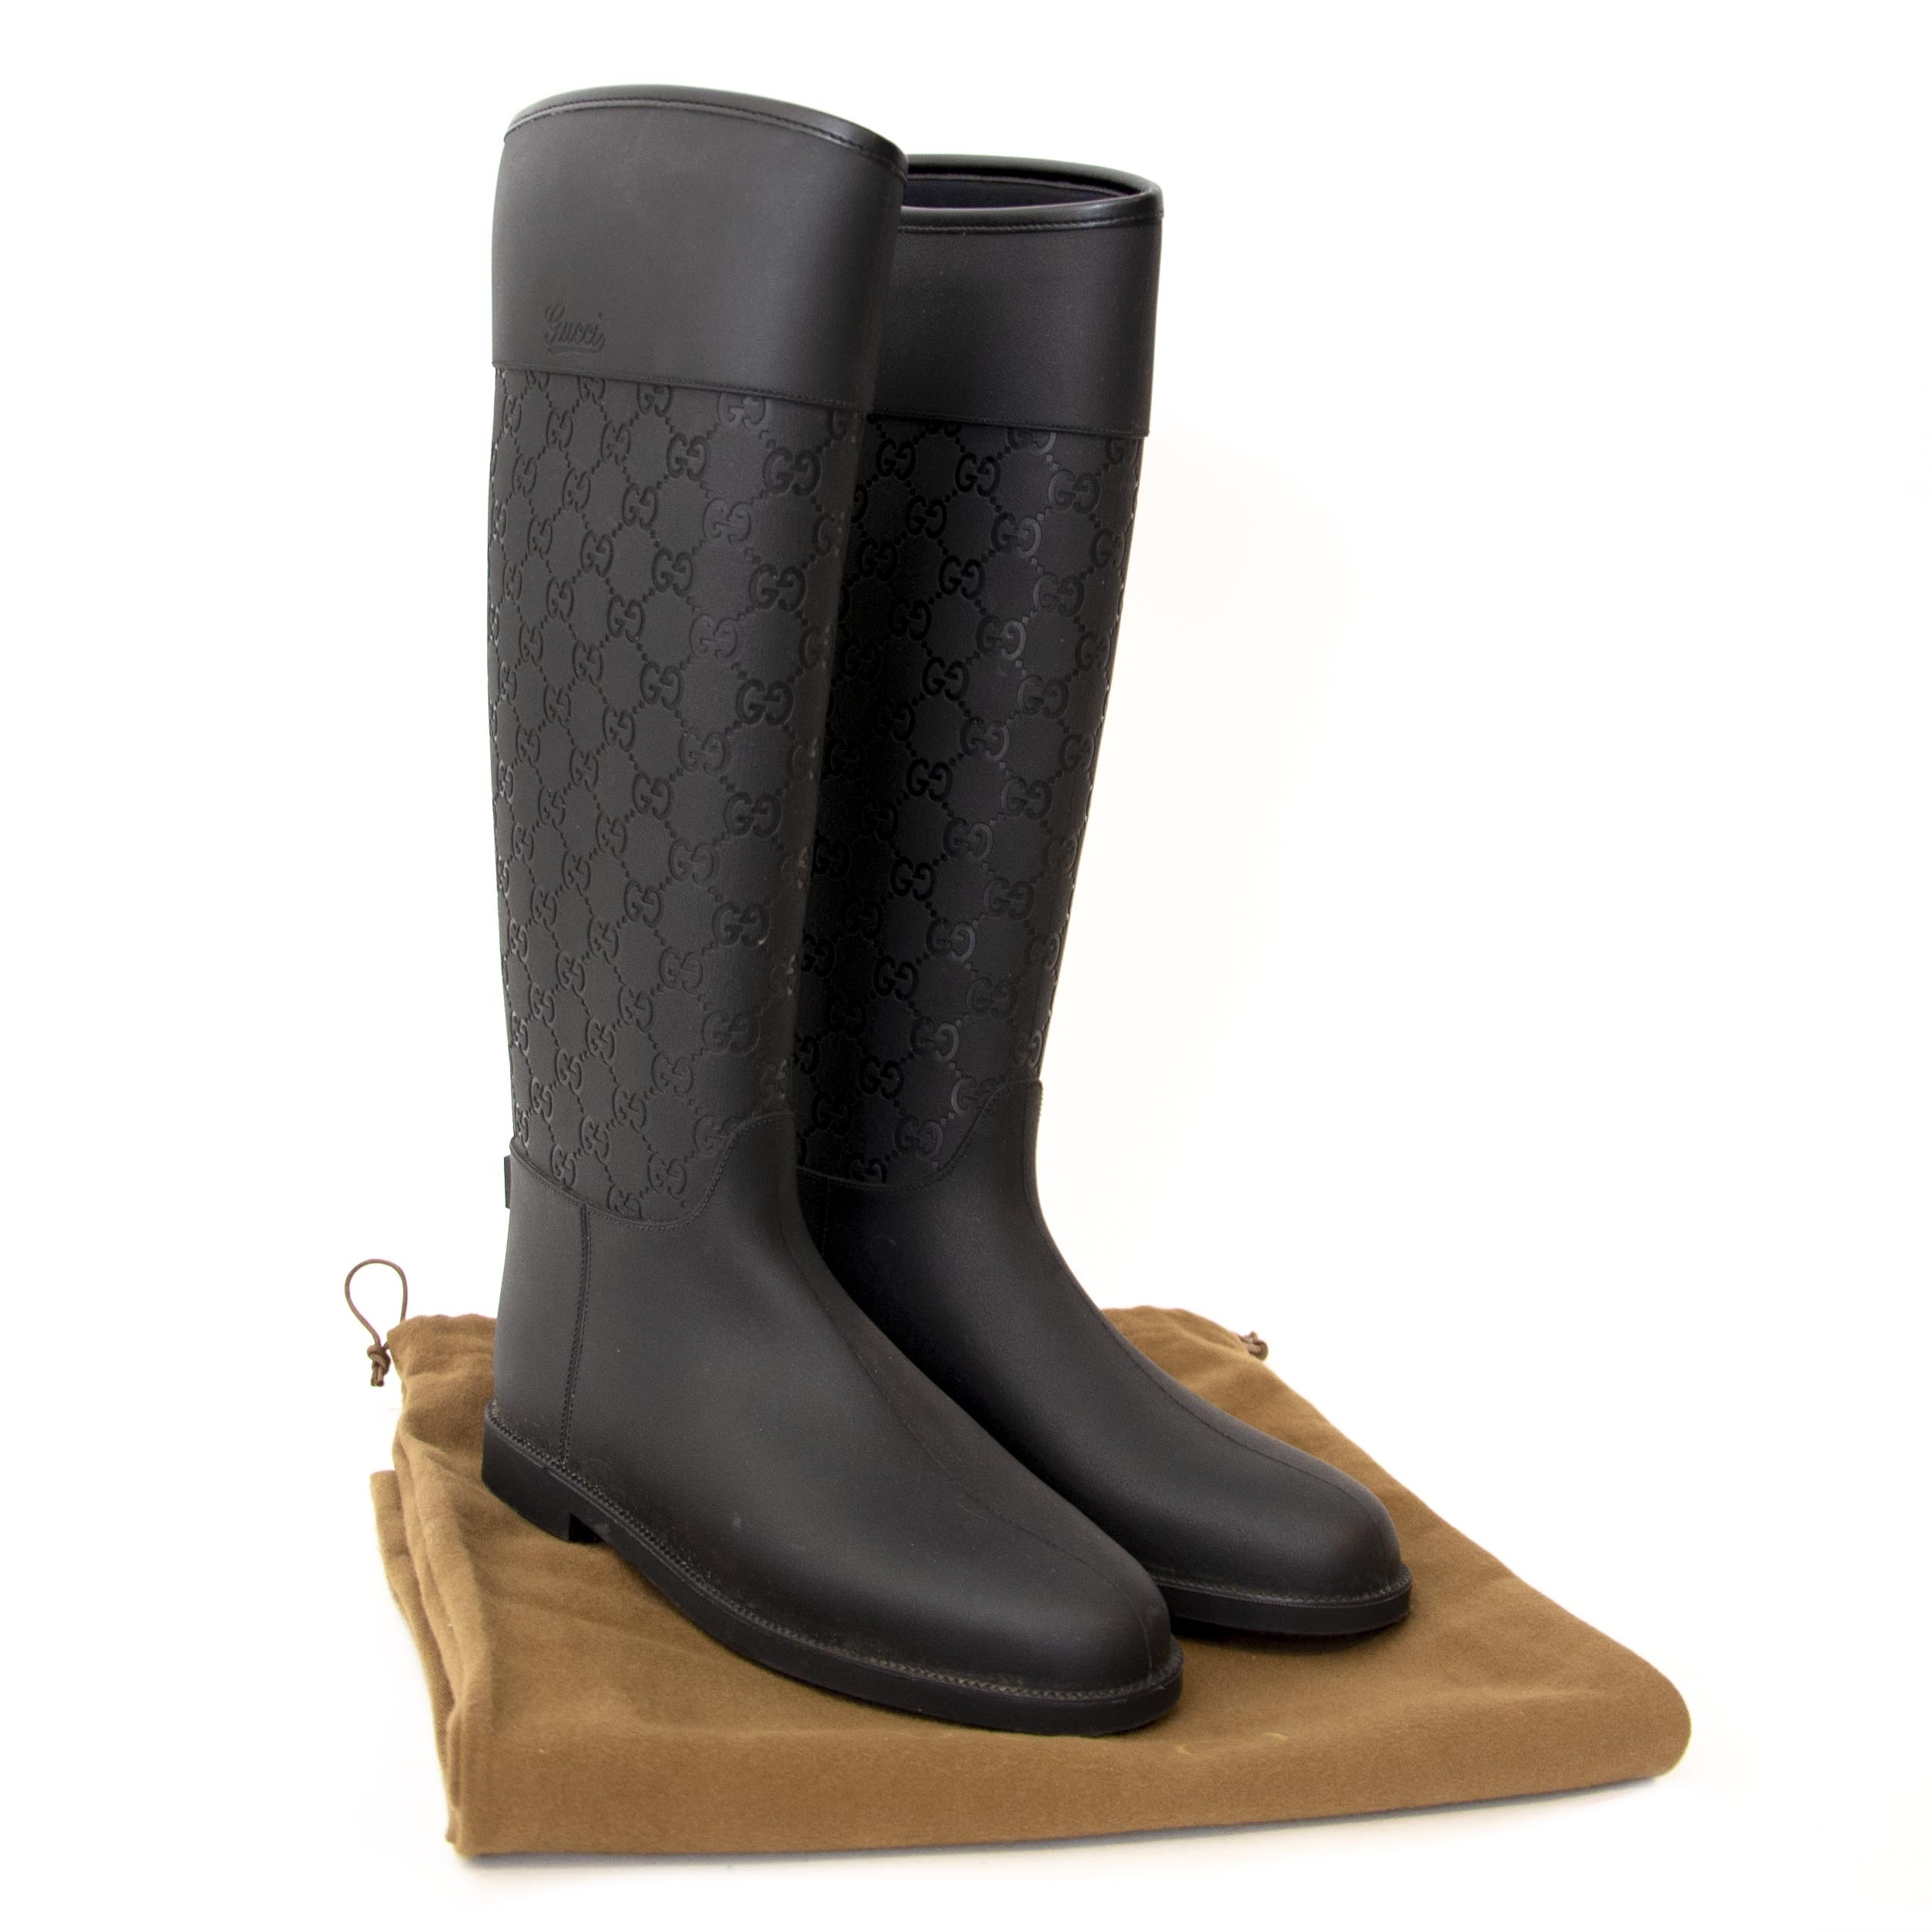 fcb44d855cc ... secondhand We buy and sell your authentic Gucci Monogram Rubber Boots  for the best price